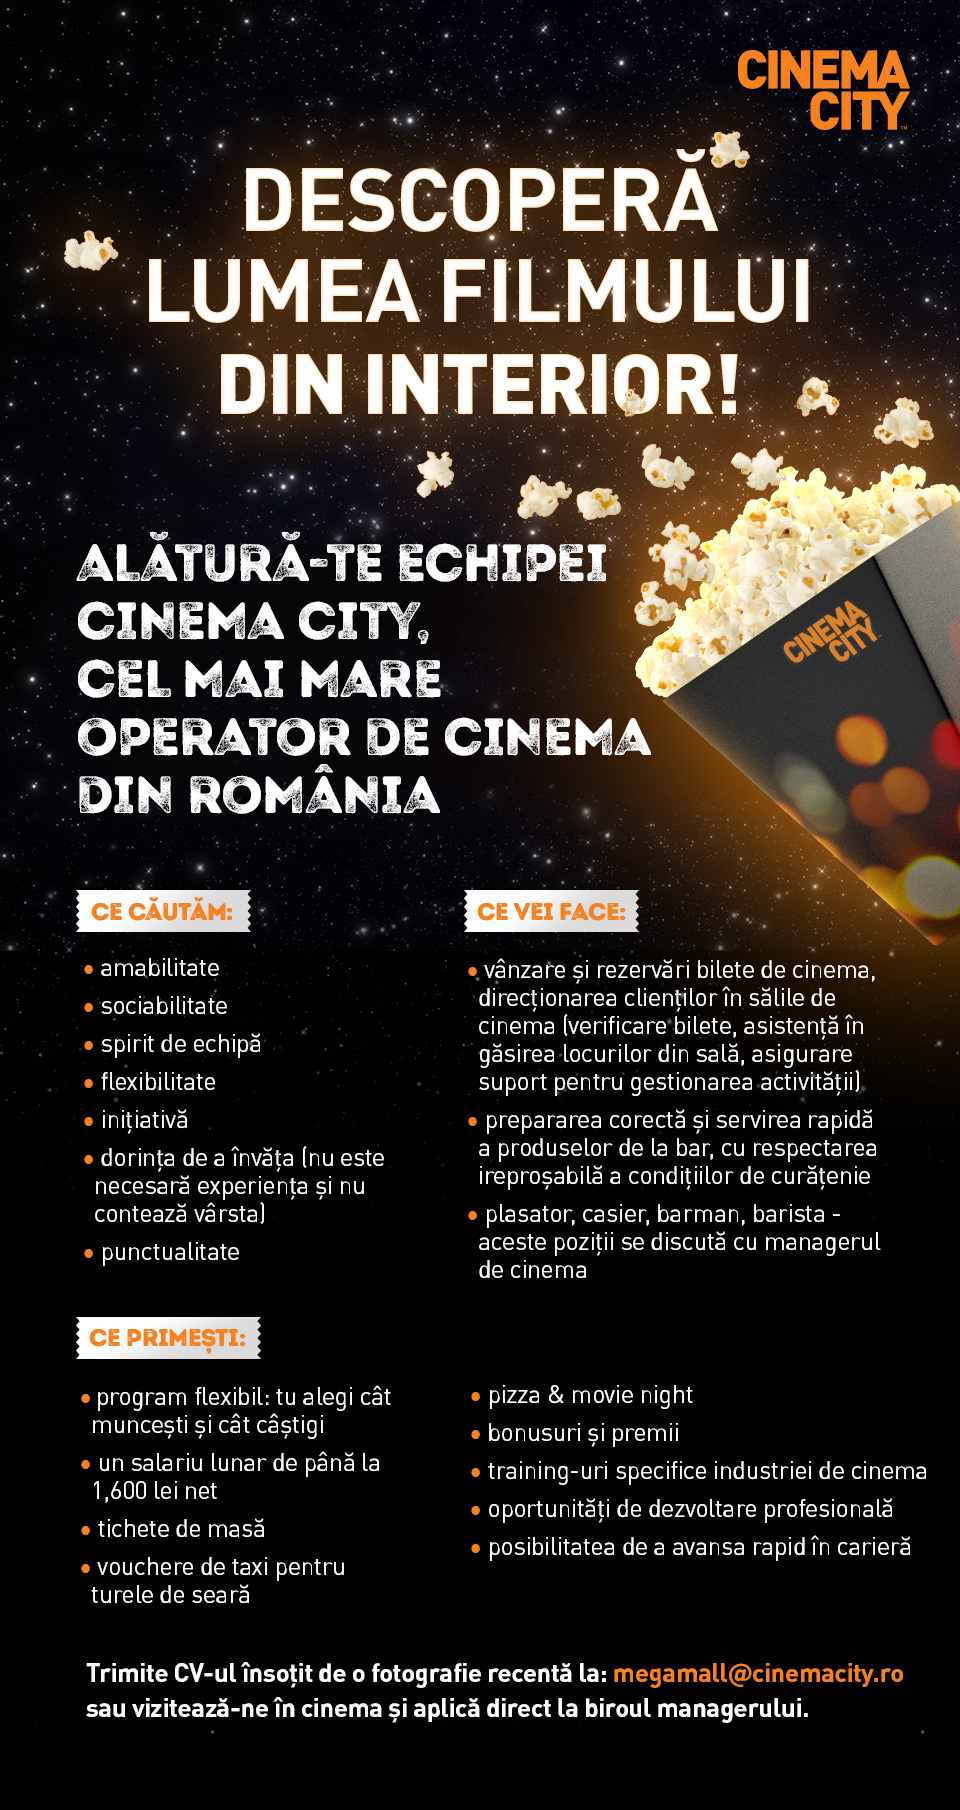 Descoperă lumea filmului din interior!